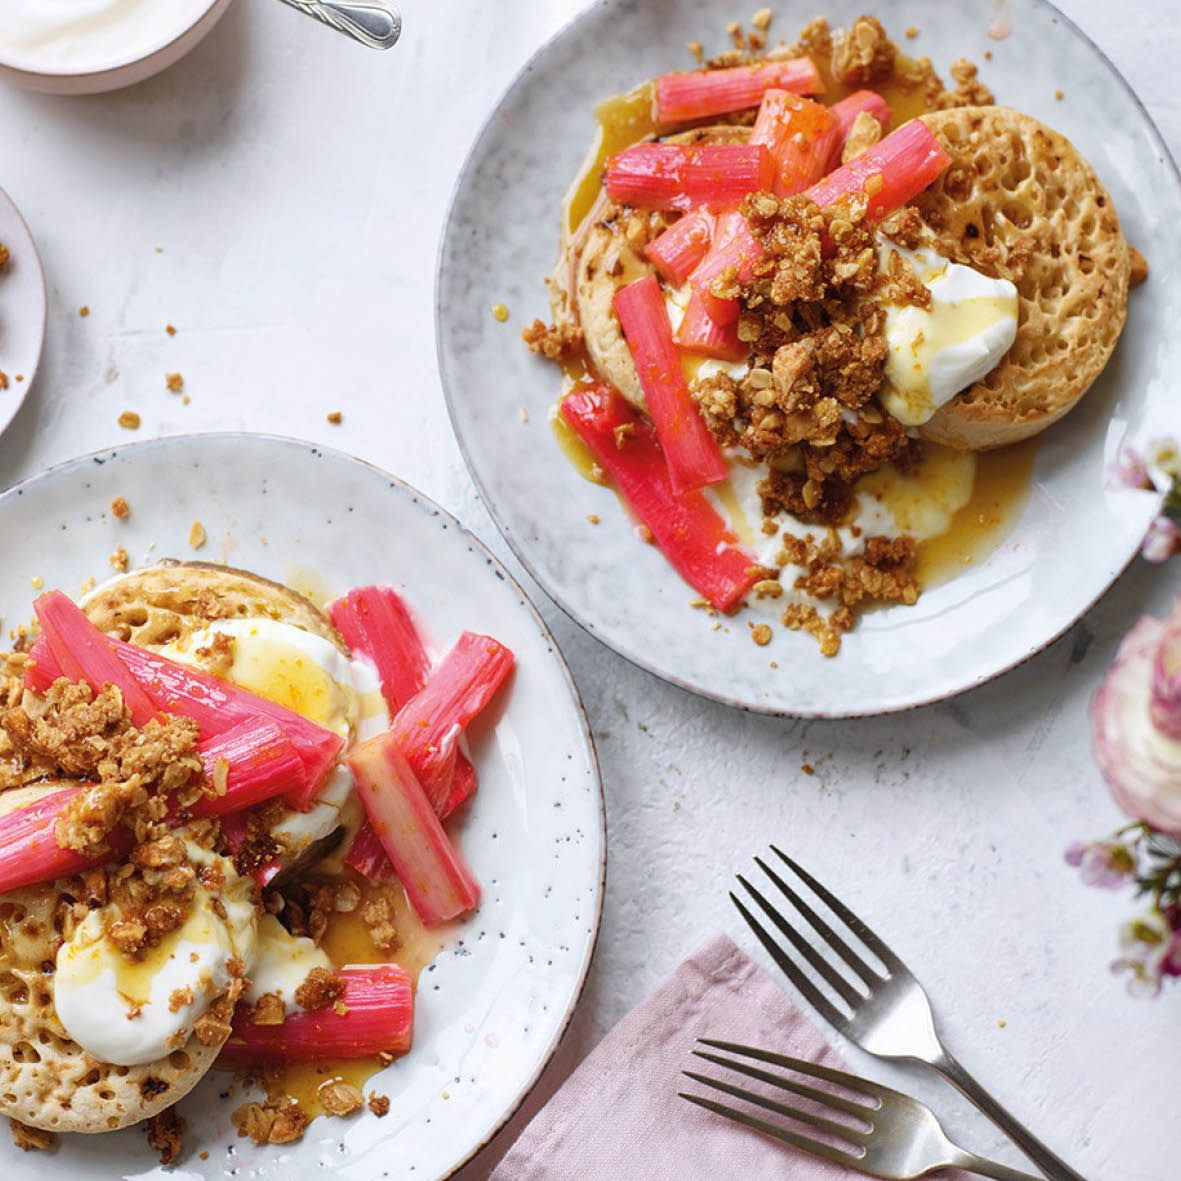 Rhubarb_crumpets_with_almond_crumb.jpg